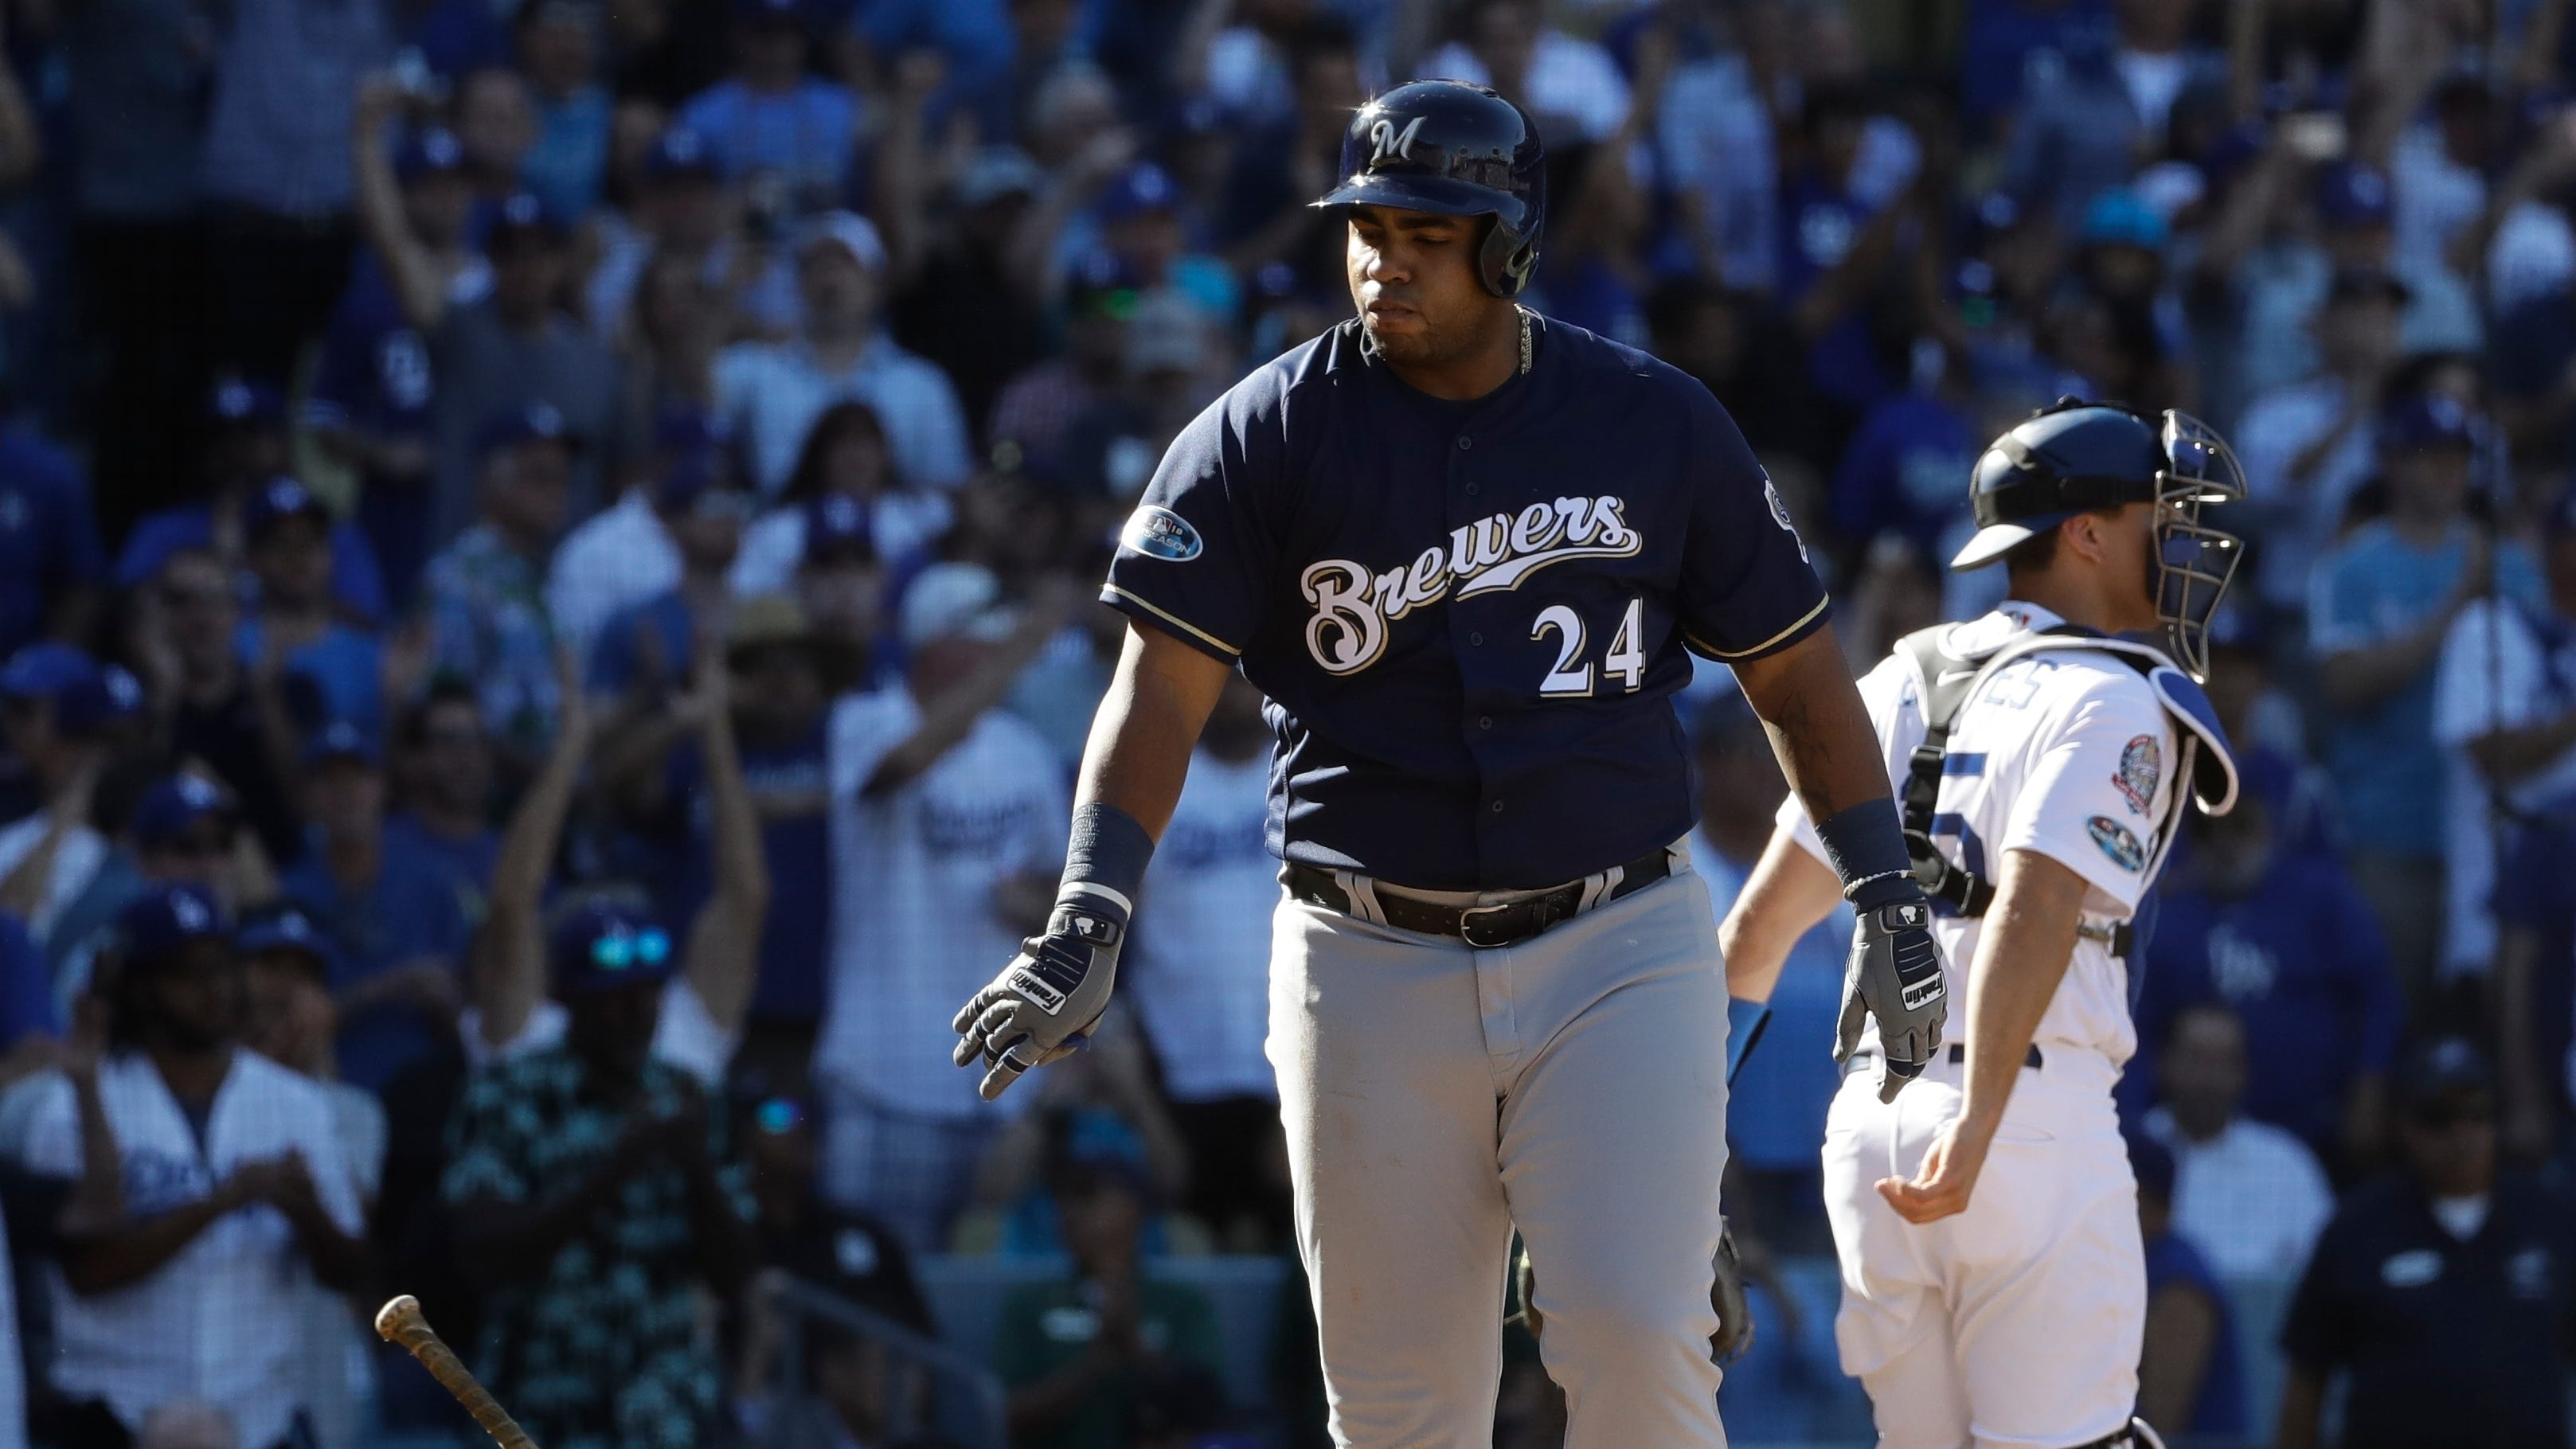 Jesus Aguilar reacts after striking out with bases loaded.